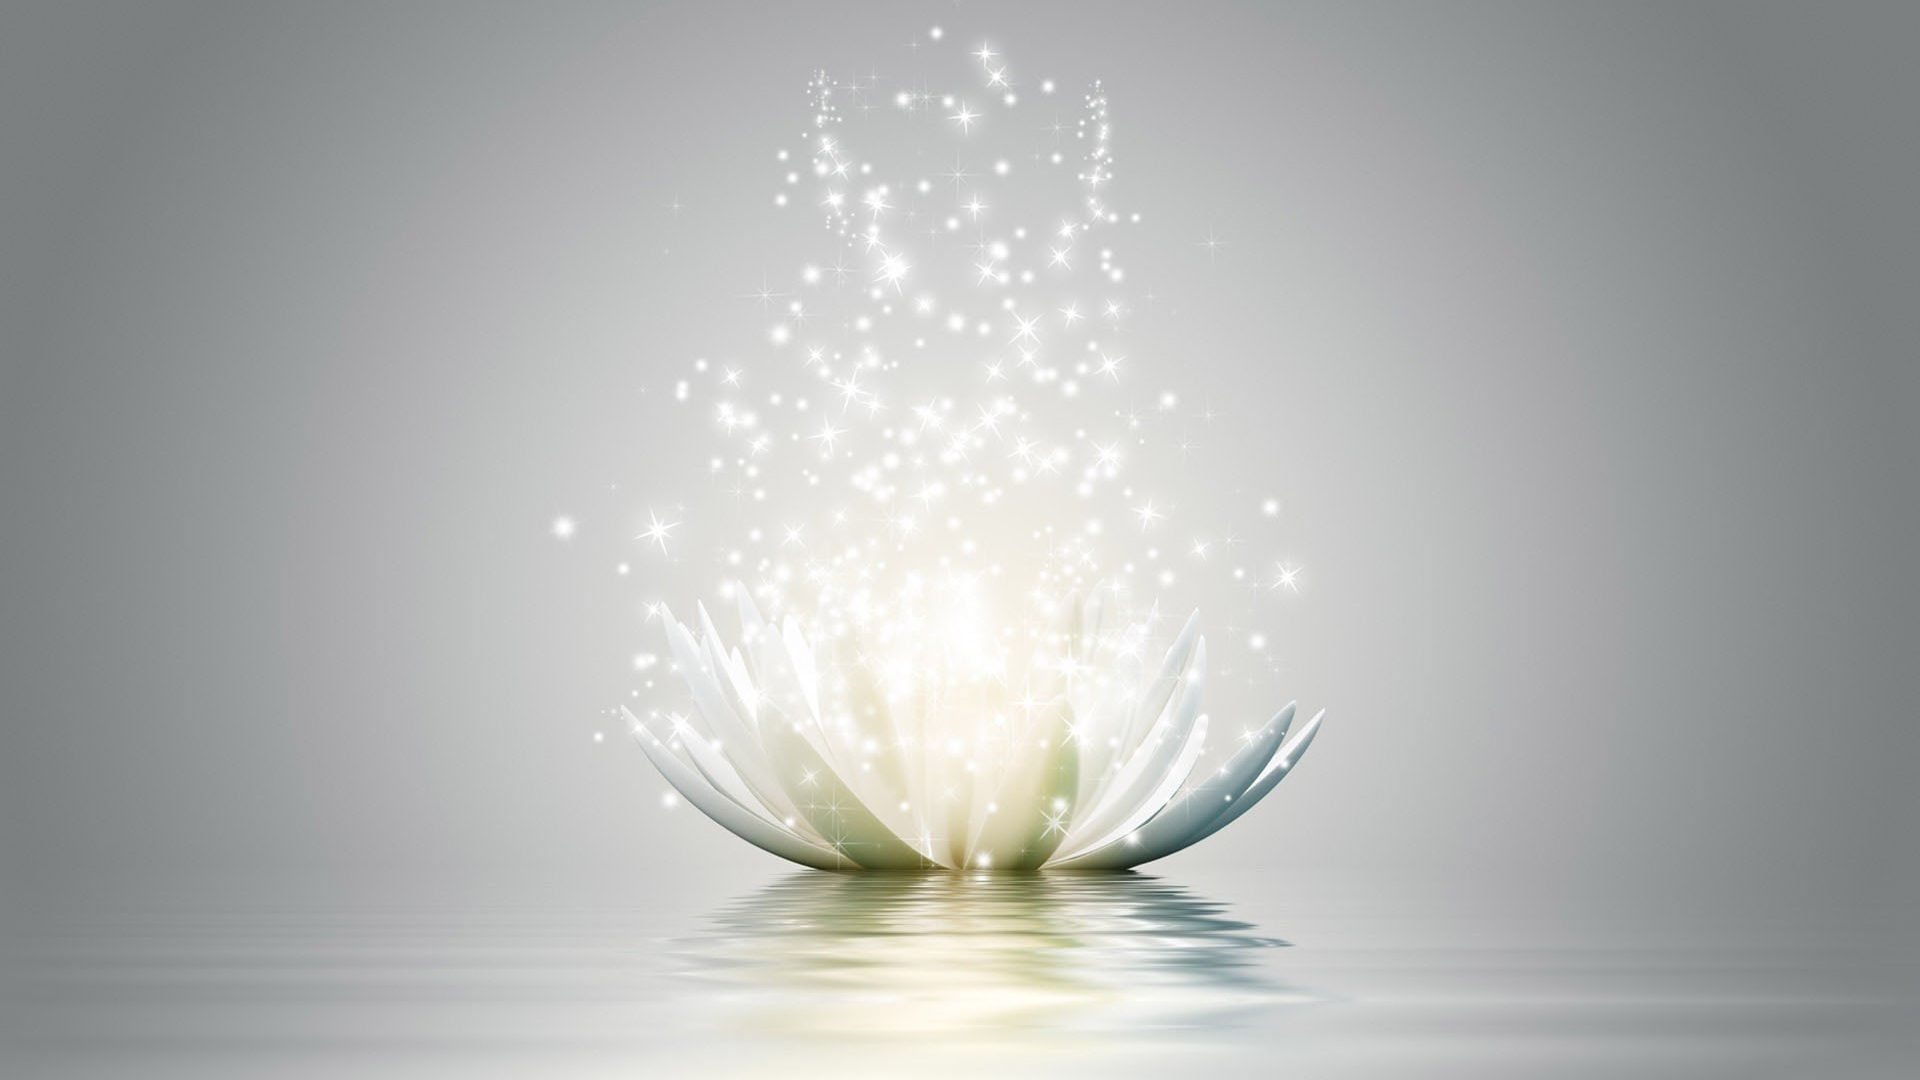 1920x1080 Animated White Lotus Flower As The Symbol Of Yoga Hd